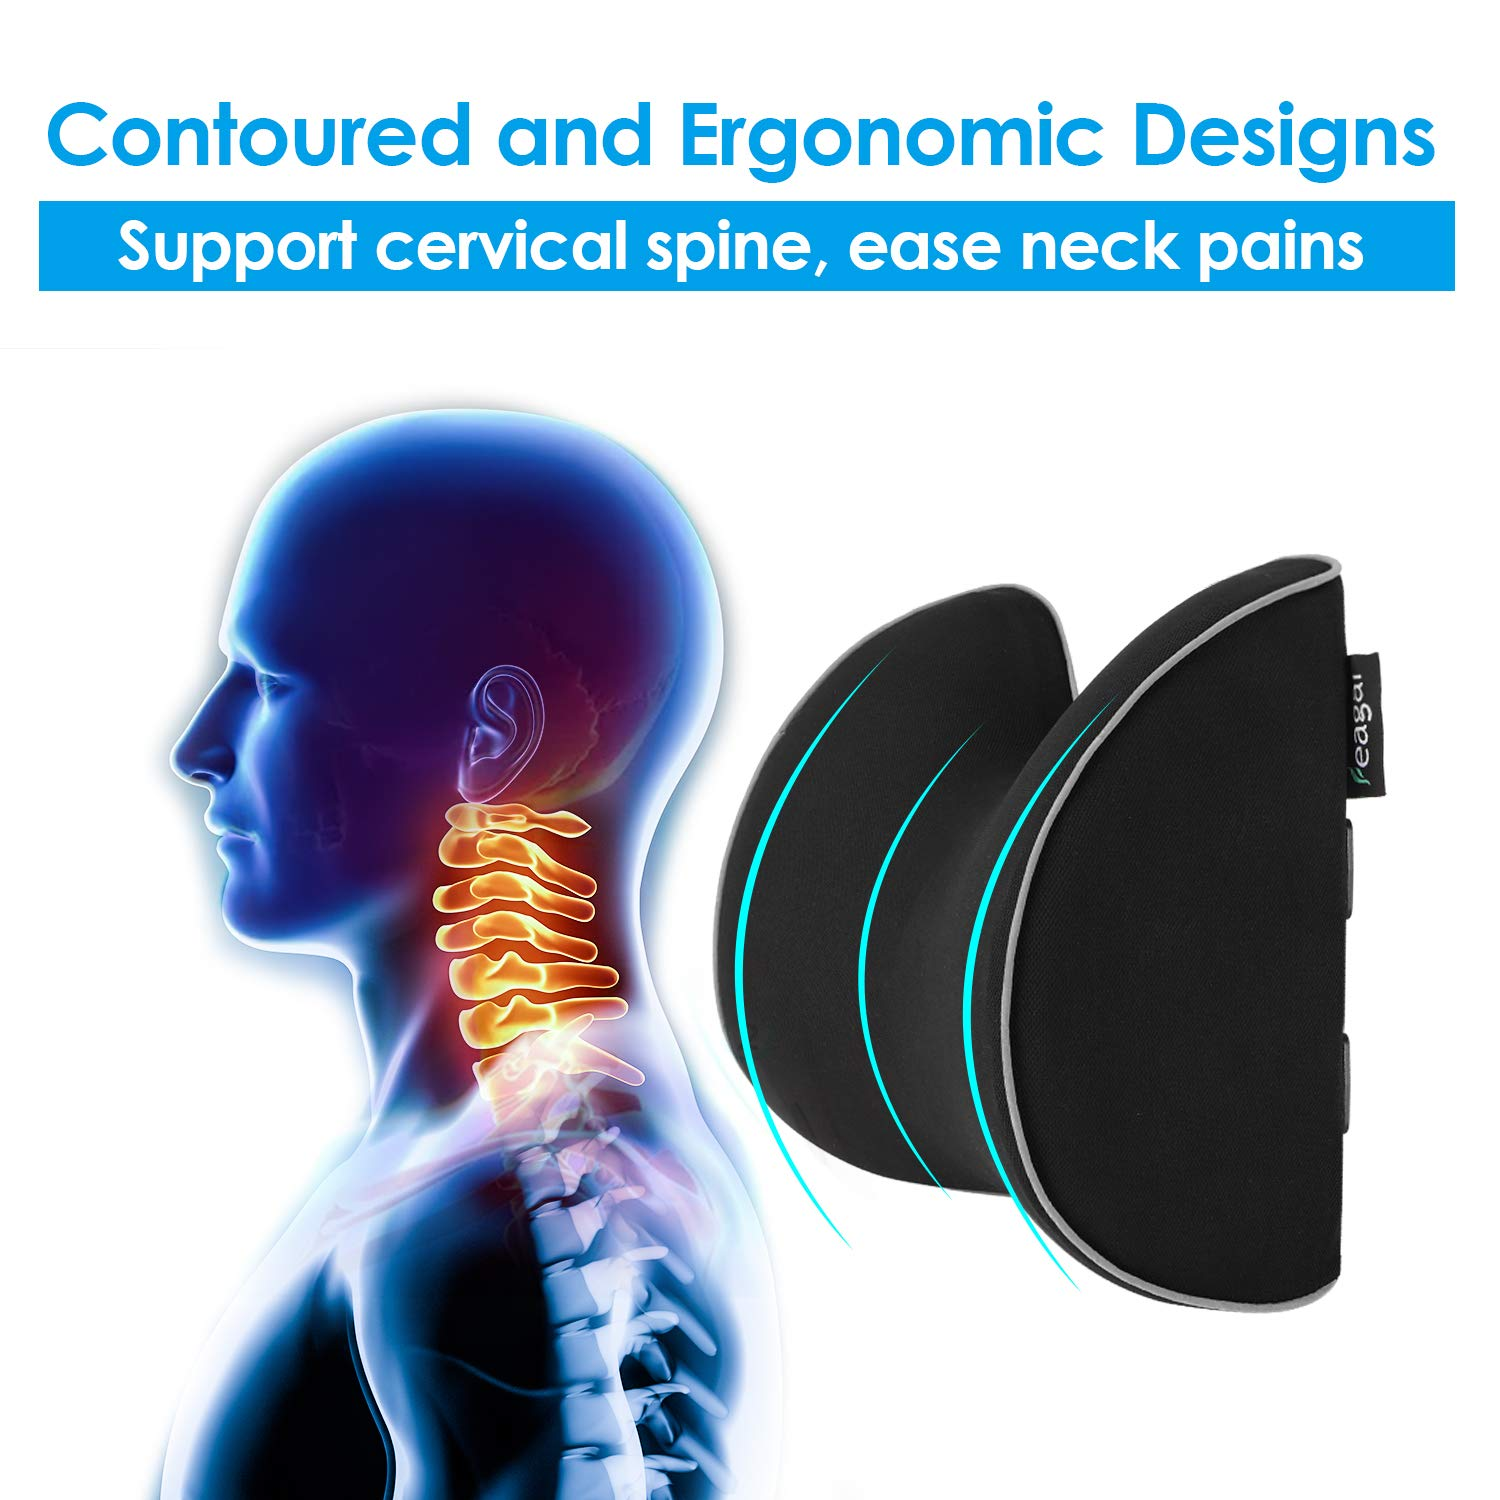 Feagar Car Seat Neck Pillow, Memory Foam Headrest Cushion for Driver Head, Cervical Support - Ergonomic, with 2 Adjustable Straps and Washable Cover- Driving Neck Pain Relief (Black Car Neck Pillow) by Feagar (Image #3)